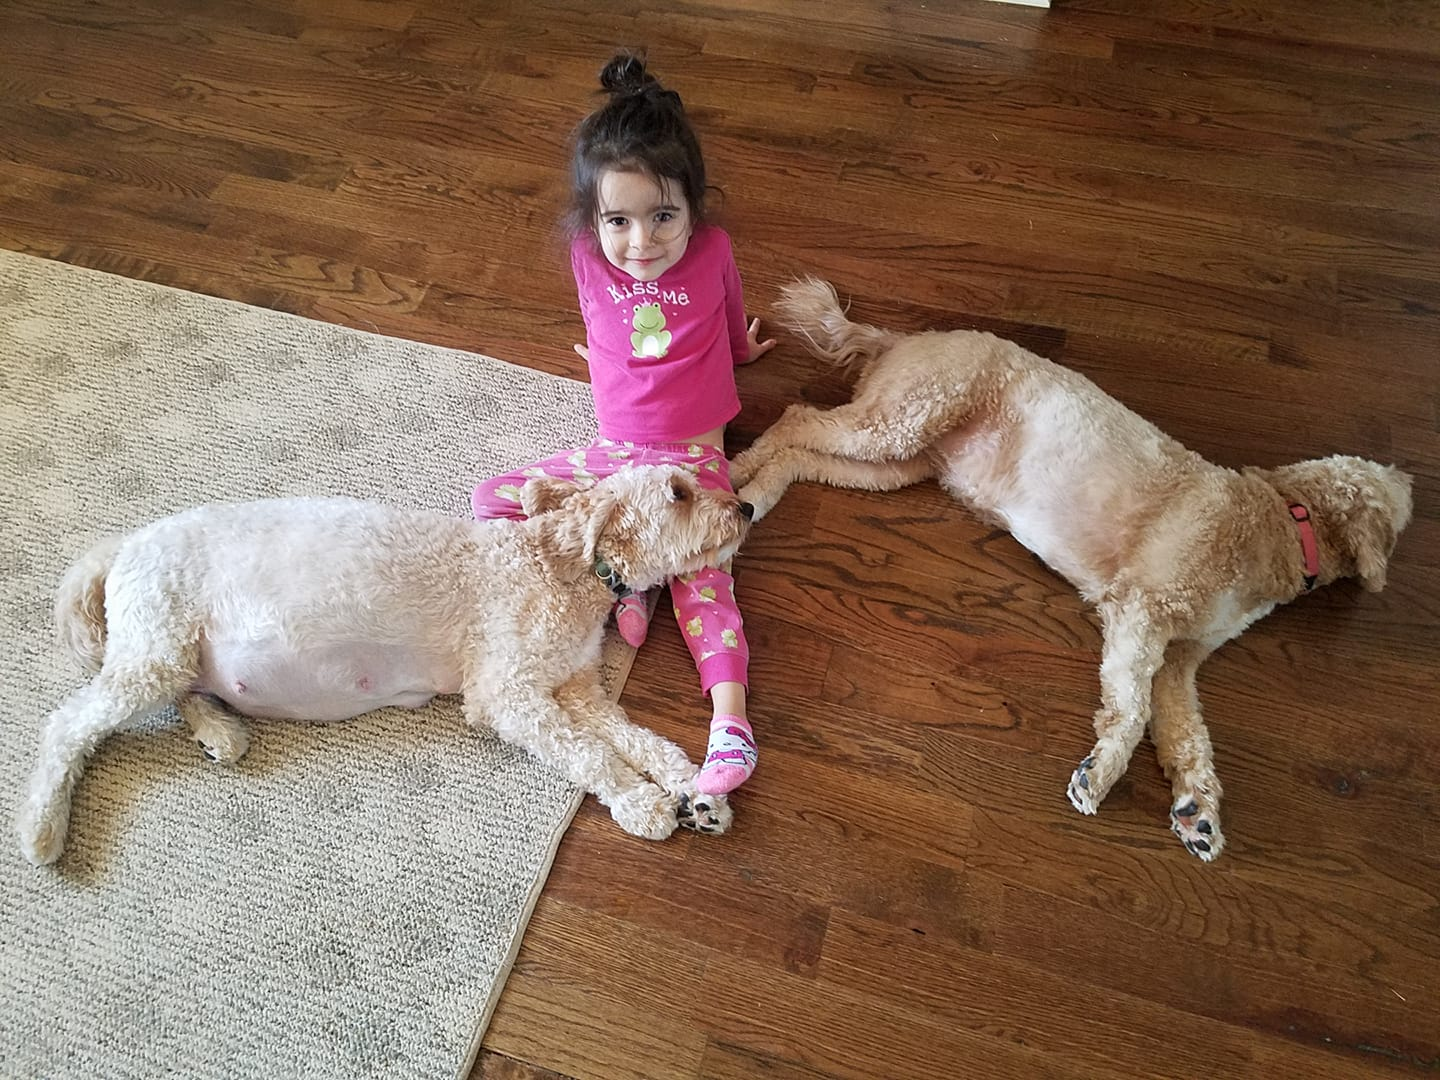 Mimi (on the left), the Goldendoodle mom; with her best friend and her sister. She's the beloved pet of one our guardian homes.